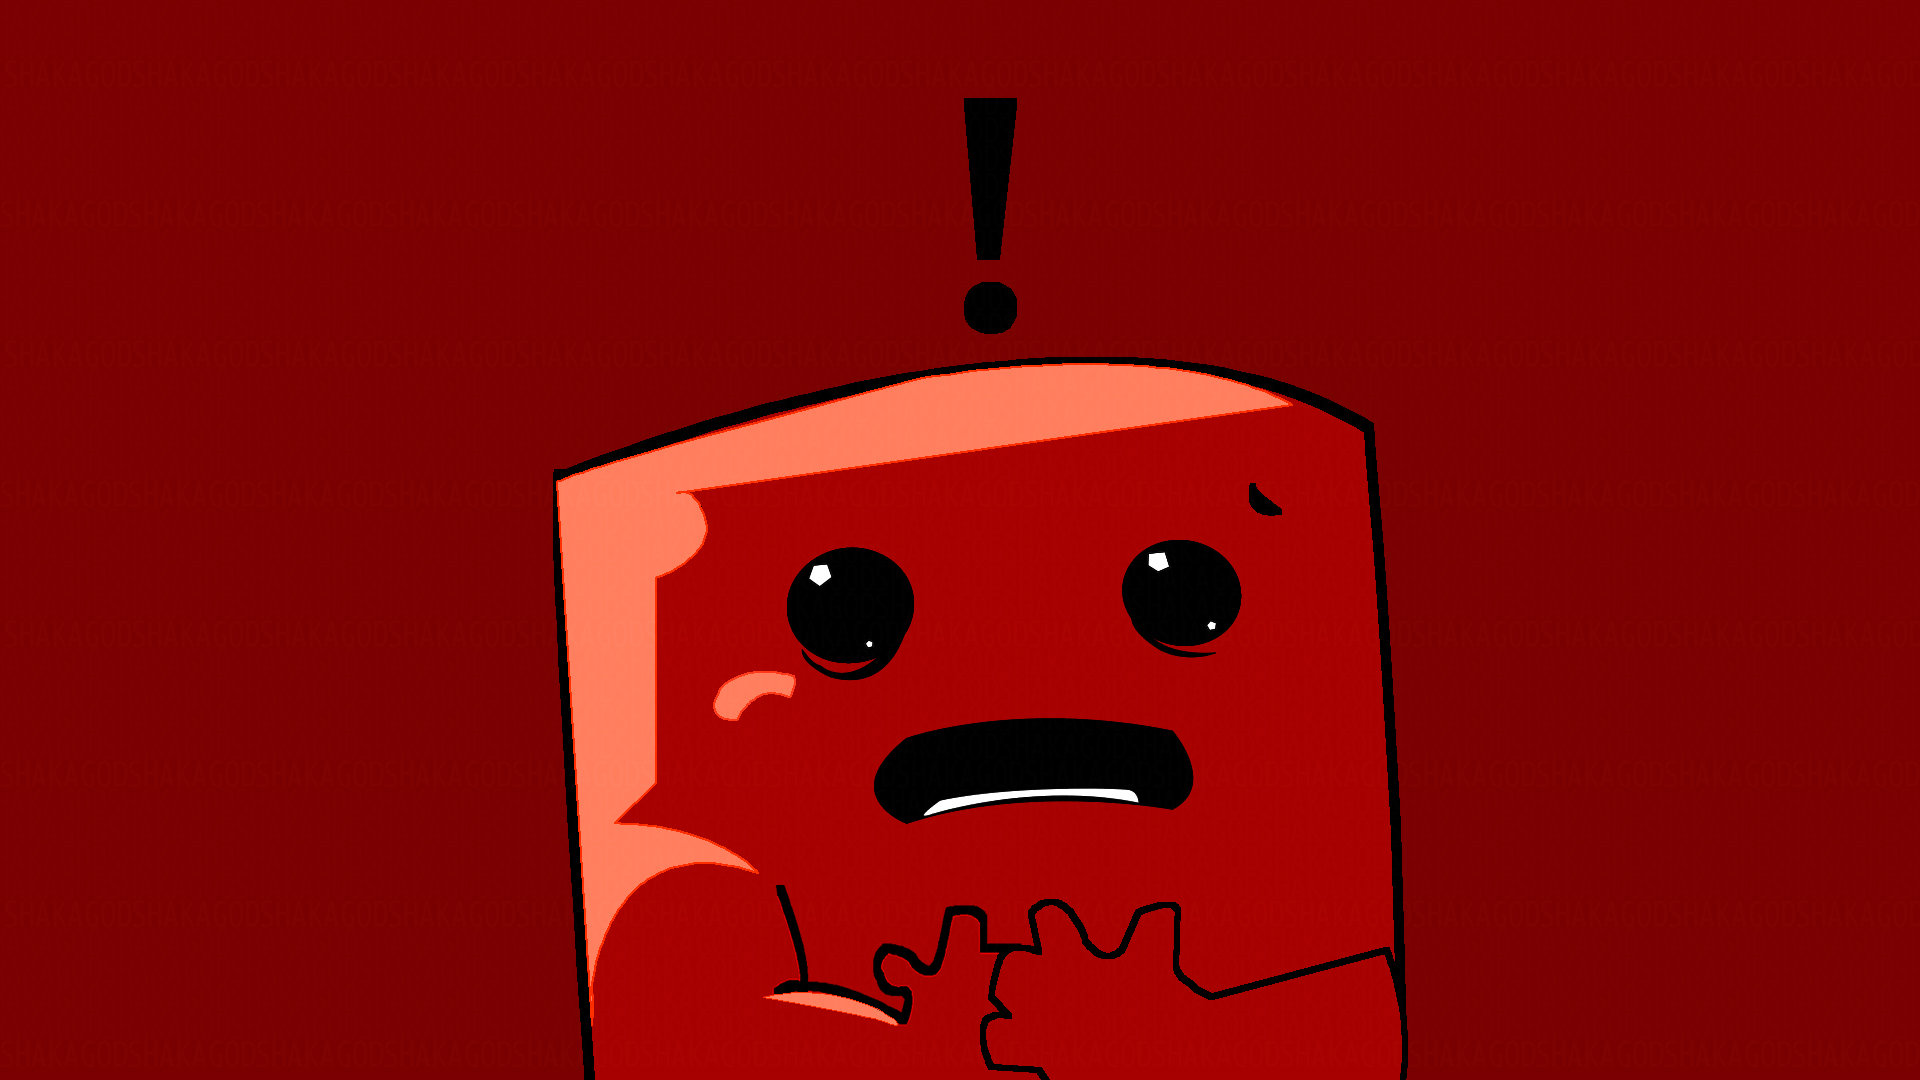 Super Meat Boy by ShakaGod